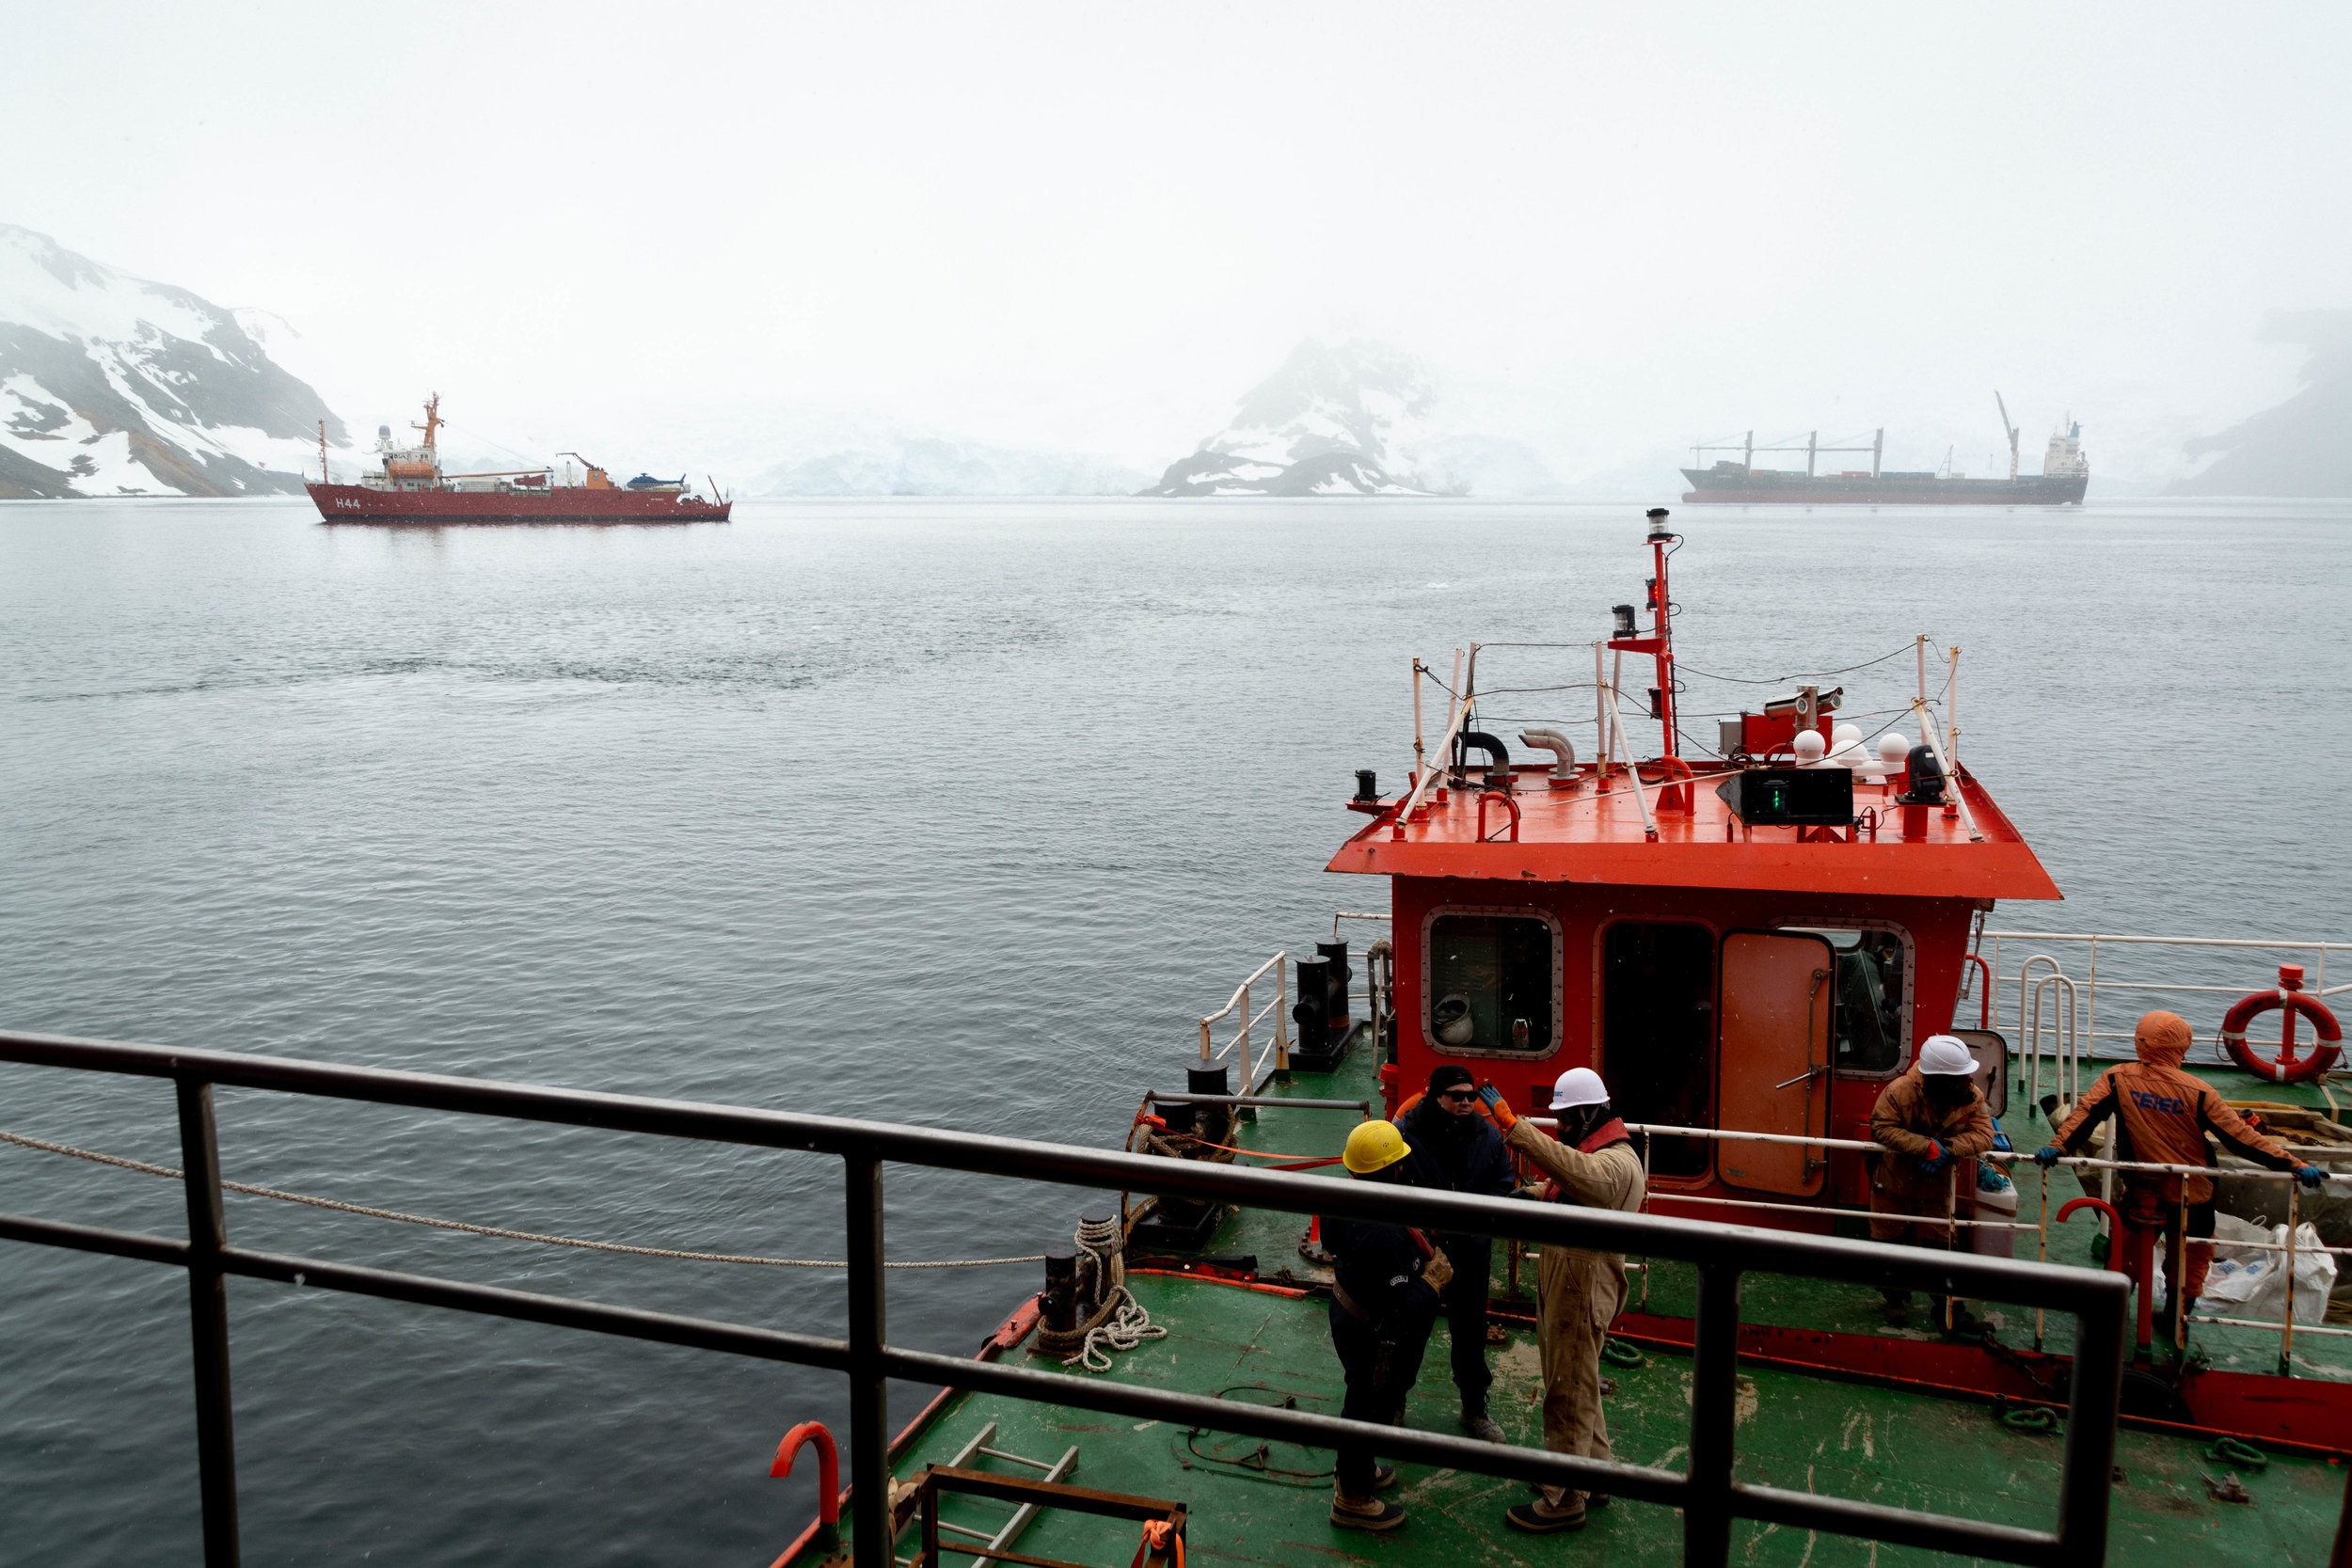 In front of King George Island, where the Brazilian Antarctic station Comandante Ferraz is being built.